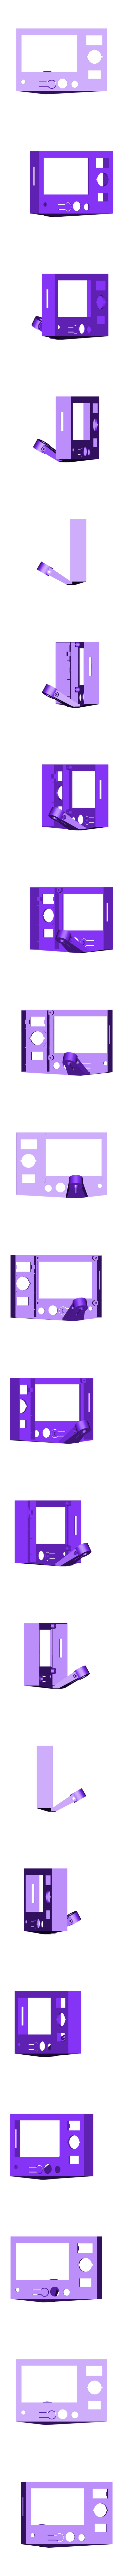 box_ecran_facade.stl Download free STL file CNC milling machine with LCD screen and SD card reader Firmware Marlin or GRBL • 3D printer template, jpwild